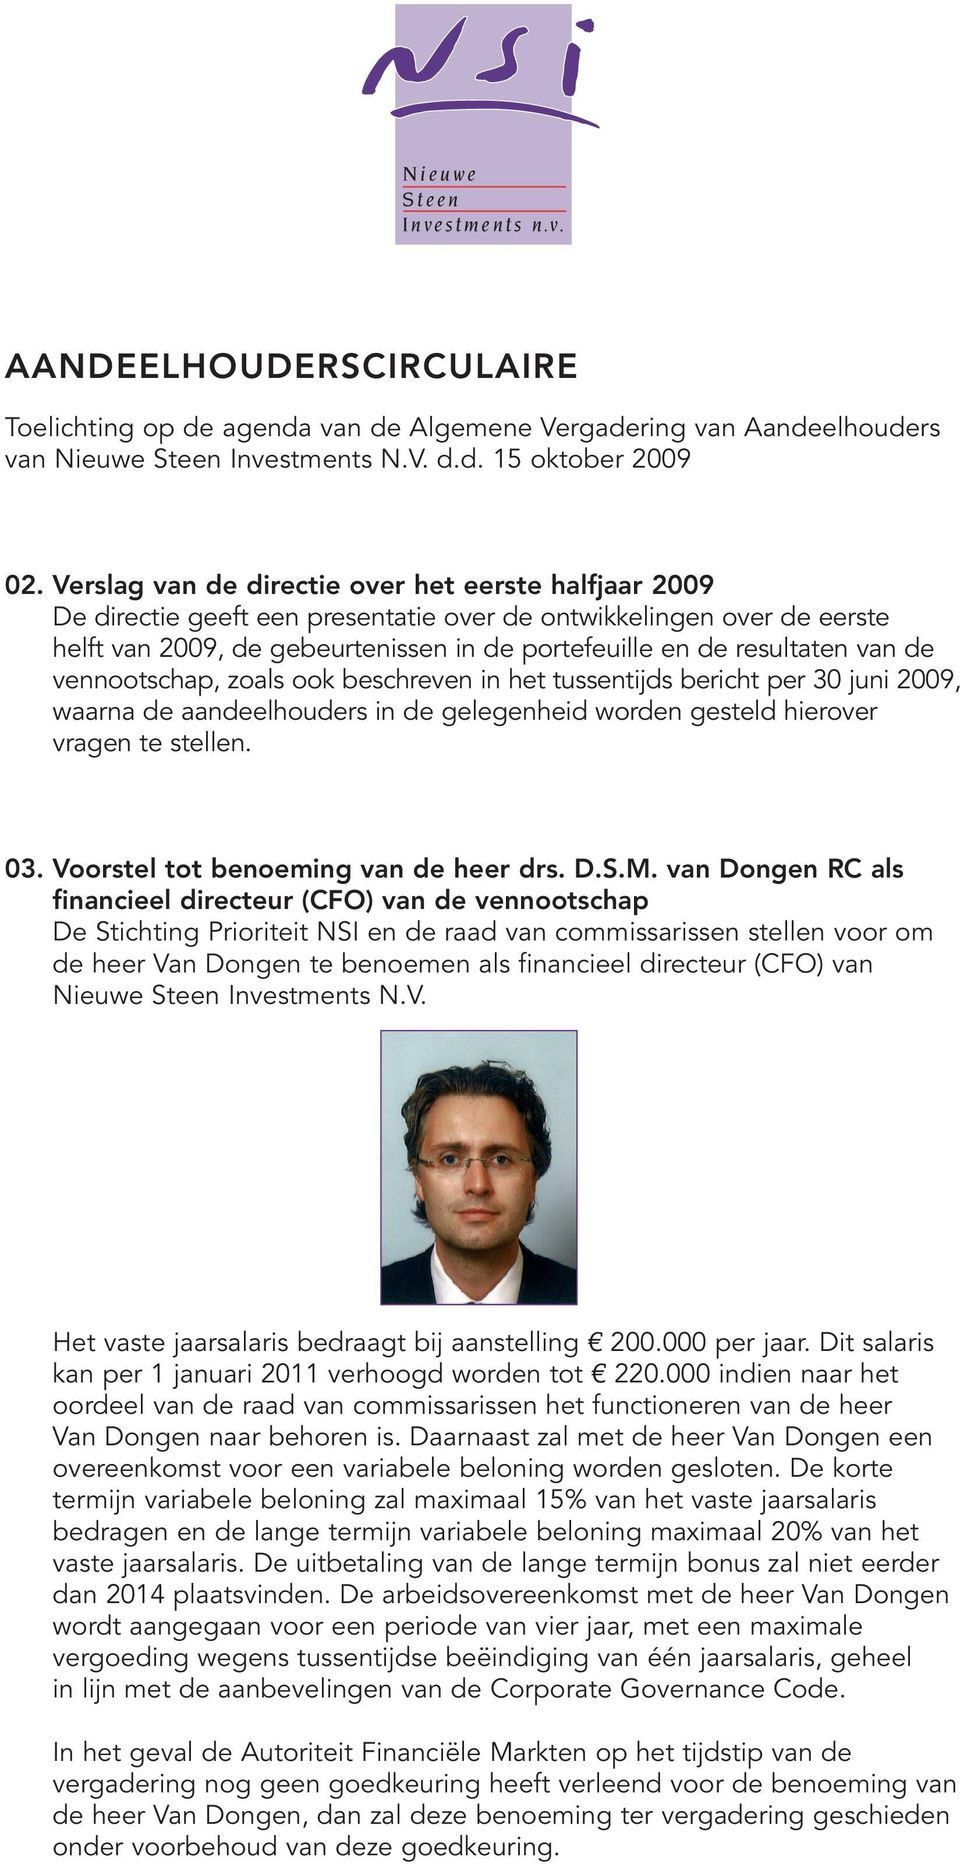 nieuwe steen investments nv